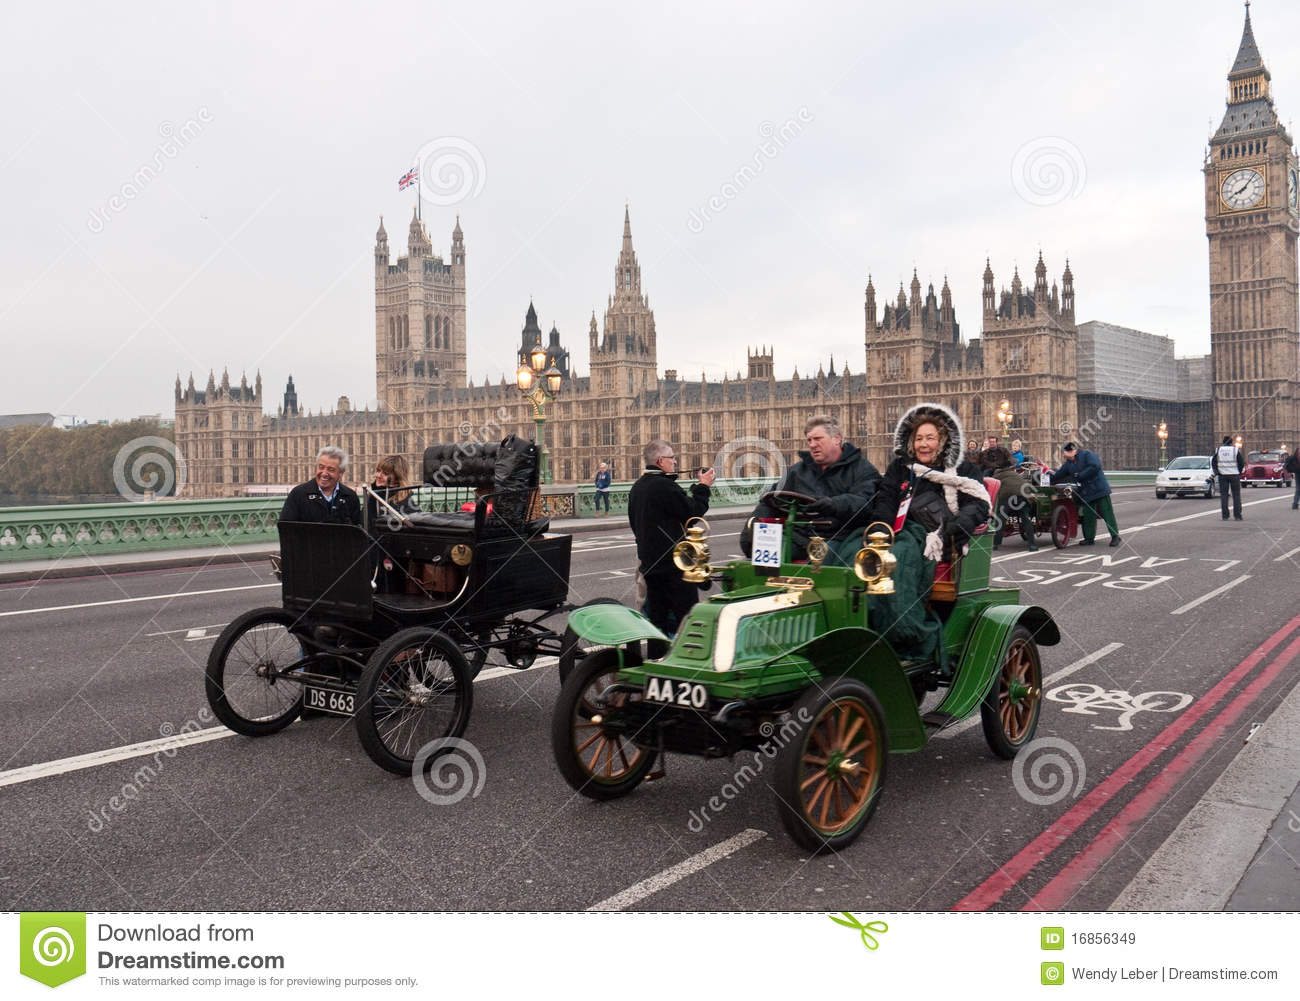 Londres ao funcionamento do carro de Brigghton